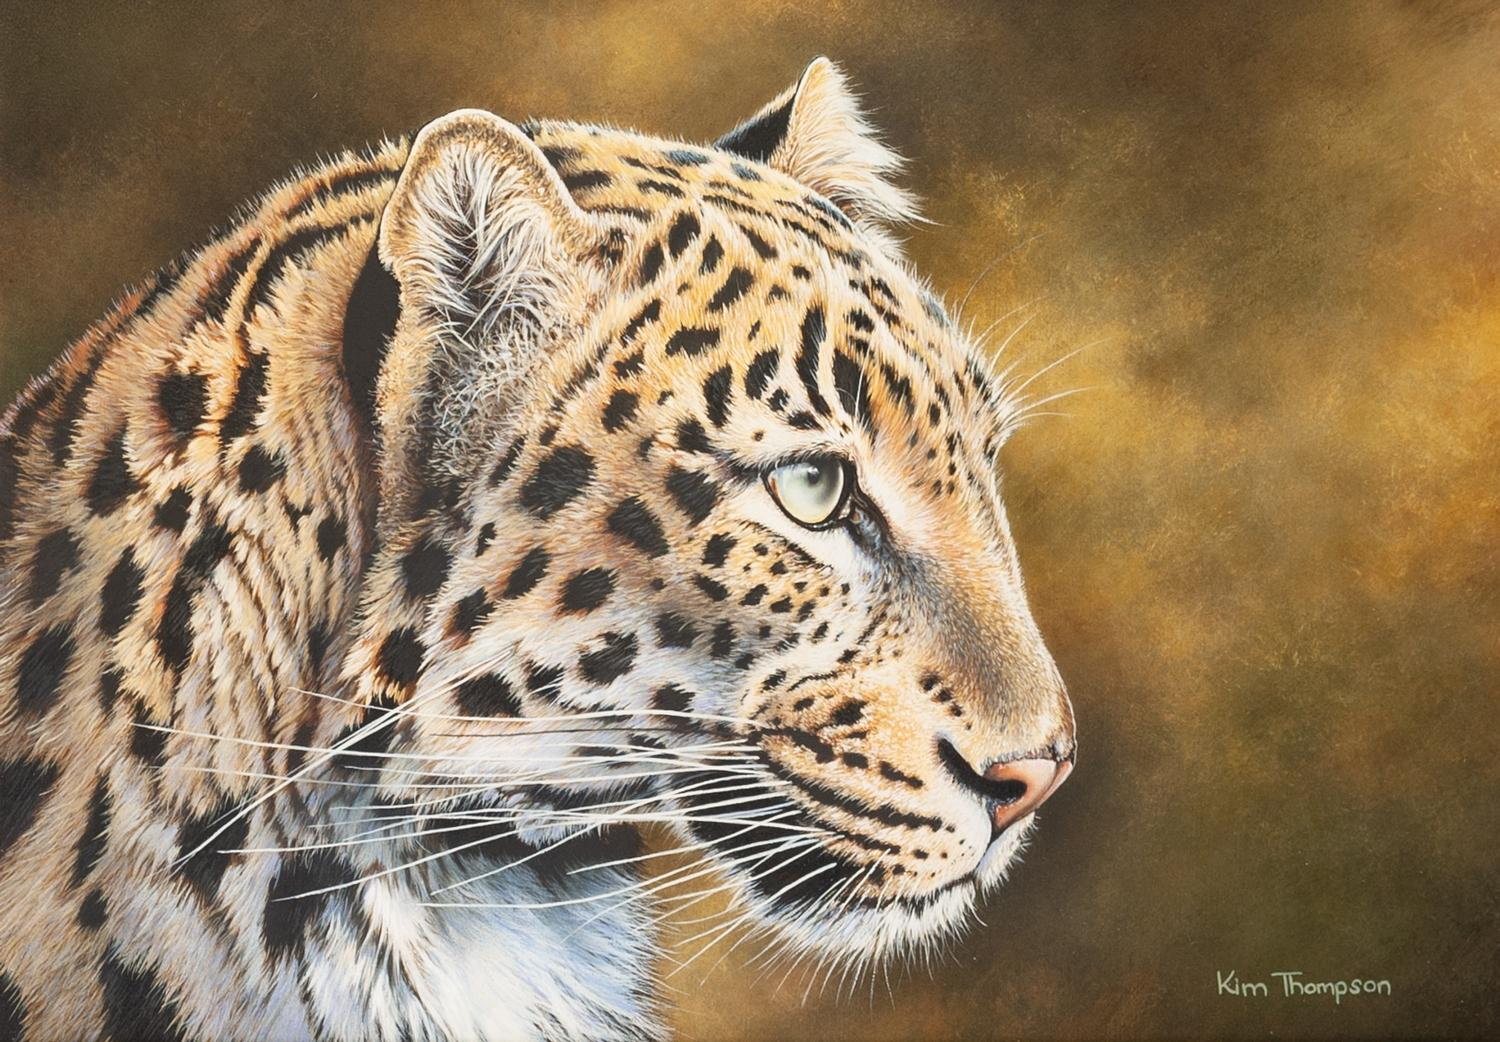 "Lot 280 - KIM THOMPSON (1963) ACRYLIC ON BOARD 'Beauty - Leopard portrait' Signed lower right 7 1/2"" x 11"" (19"